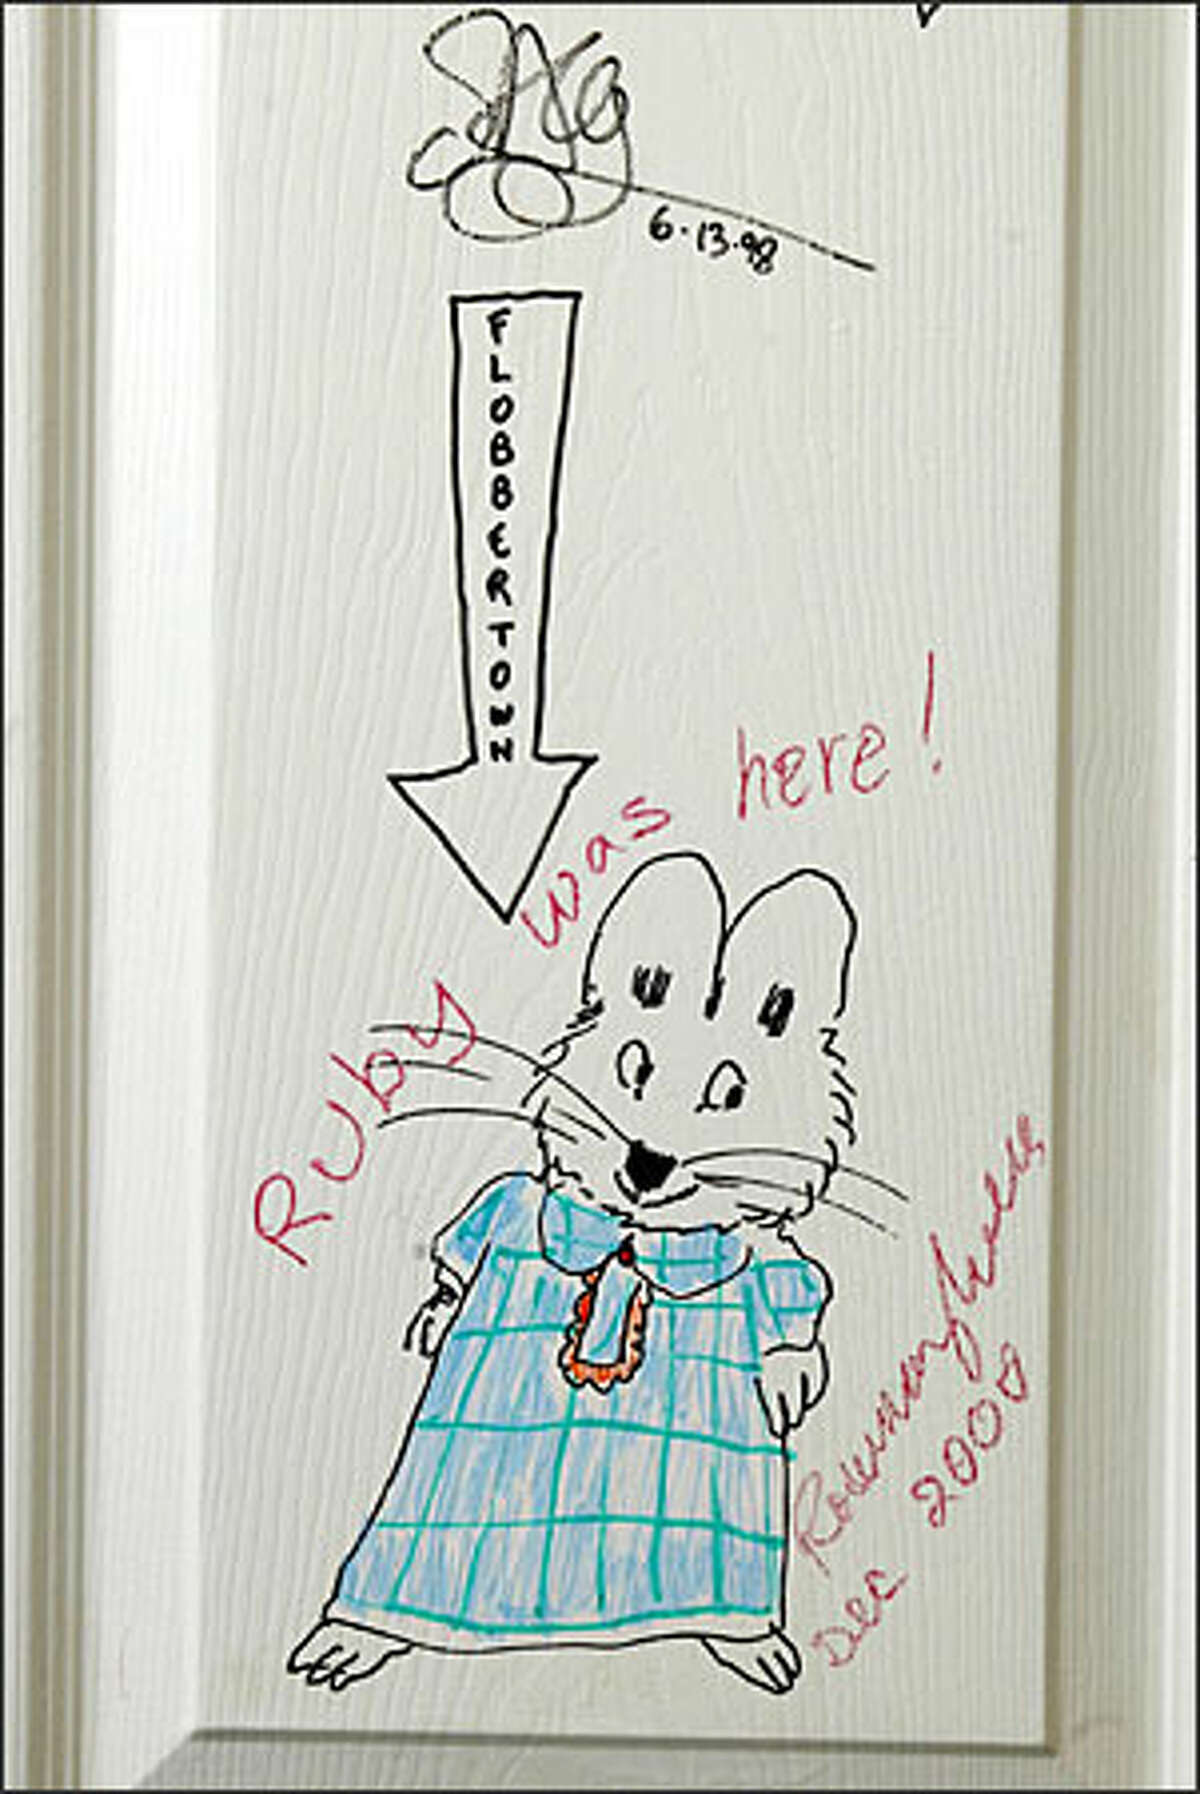 Author/illustrator Rosemary Wells has left her mark at the All For Kids store.